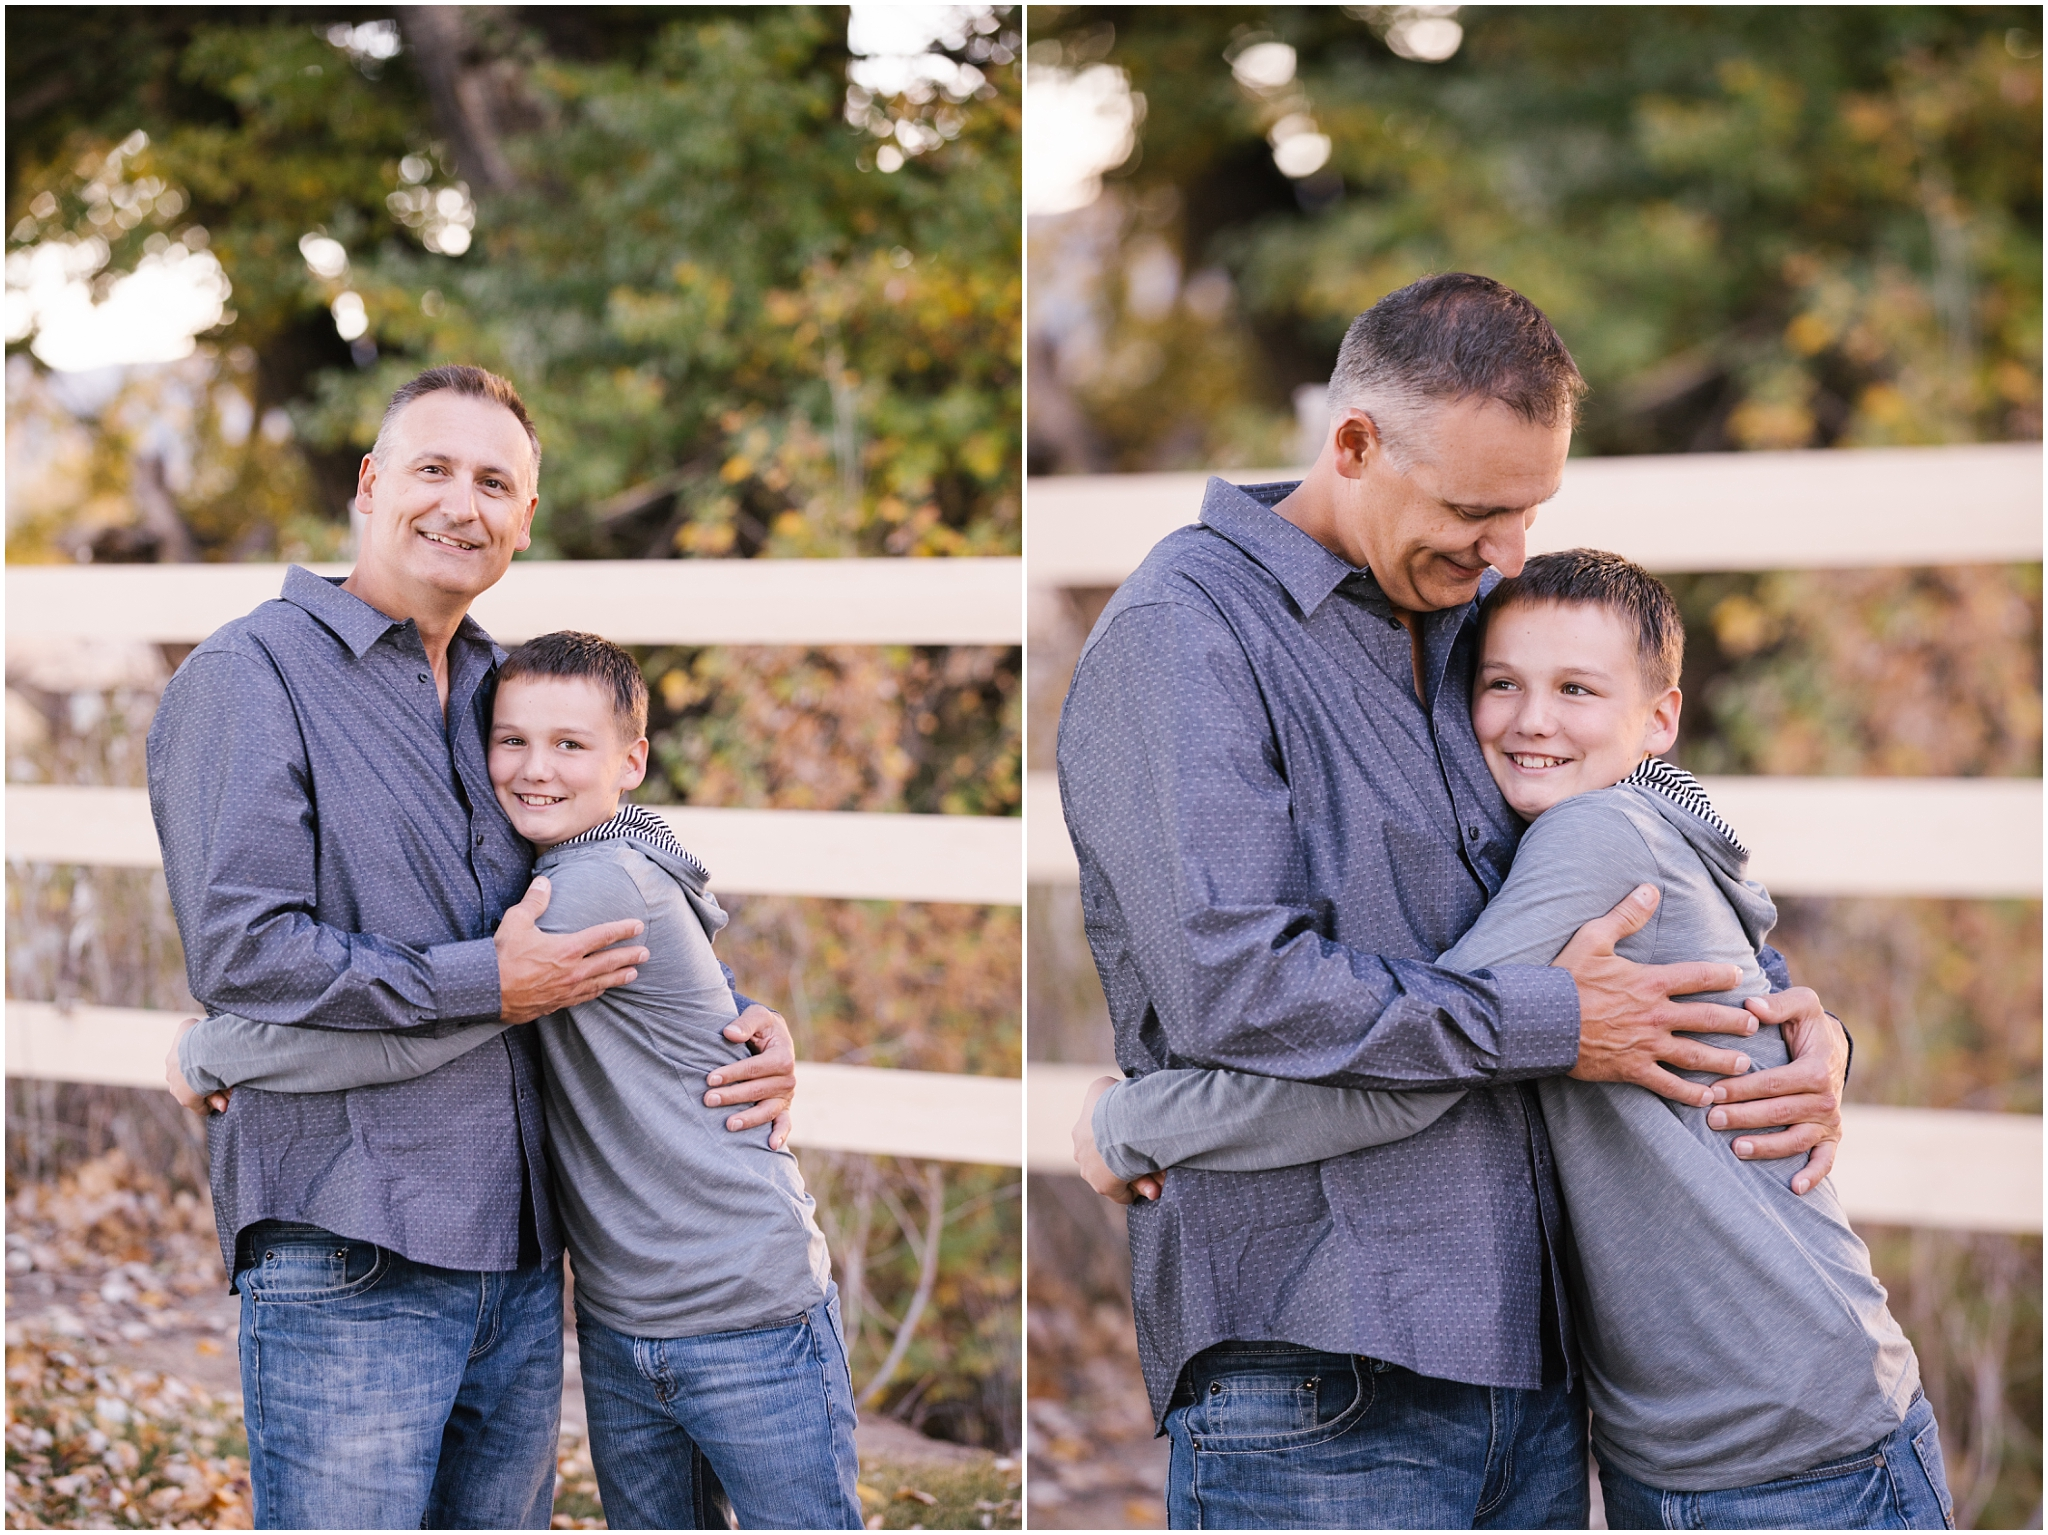 Fielding-48_Lizzie-B-Imagery-Utah-Family-Photographer-Central-Utah-Park-City-Salt-Lake-City.jpg